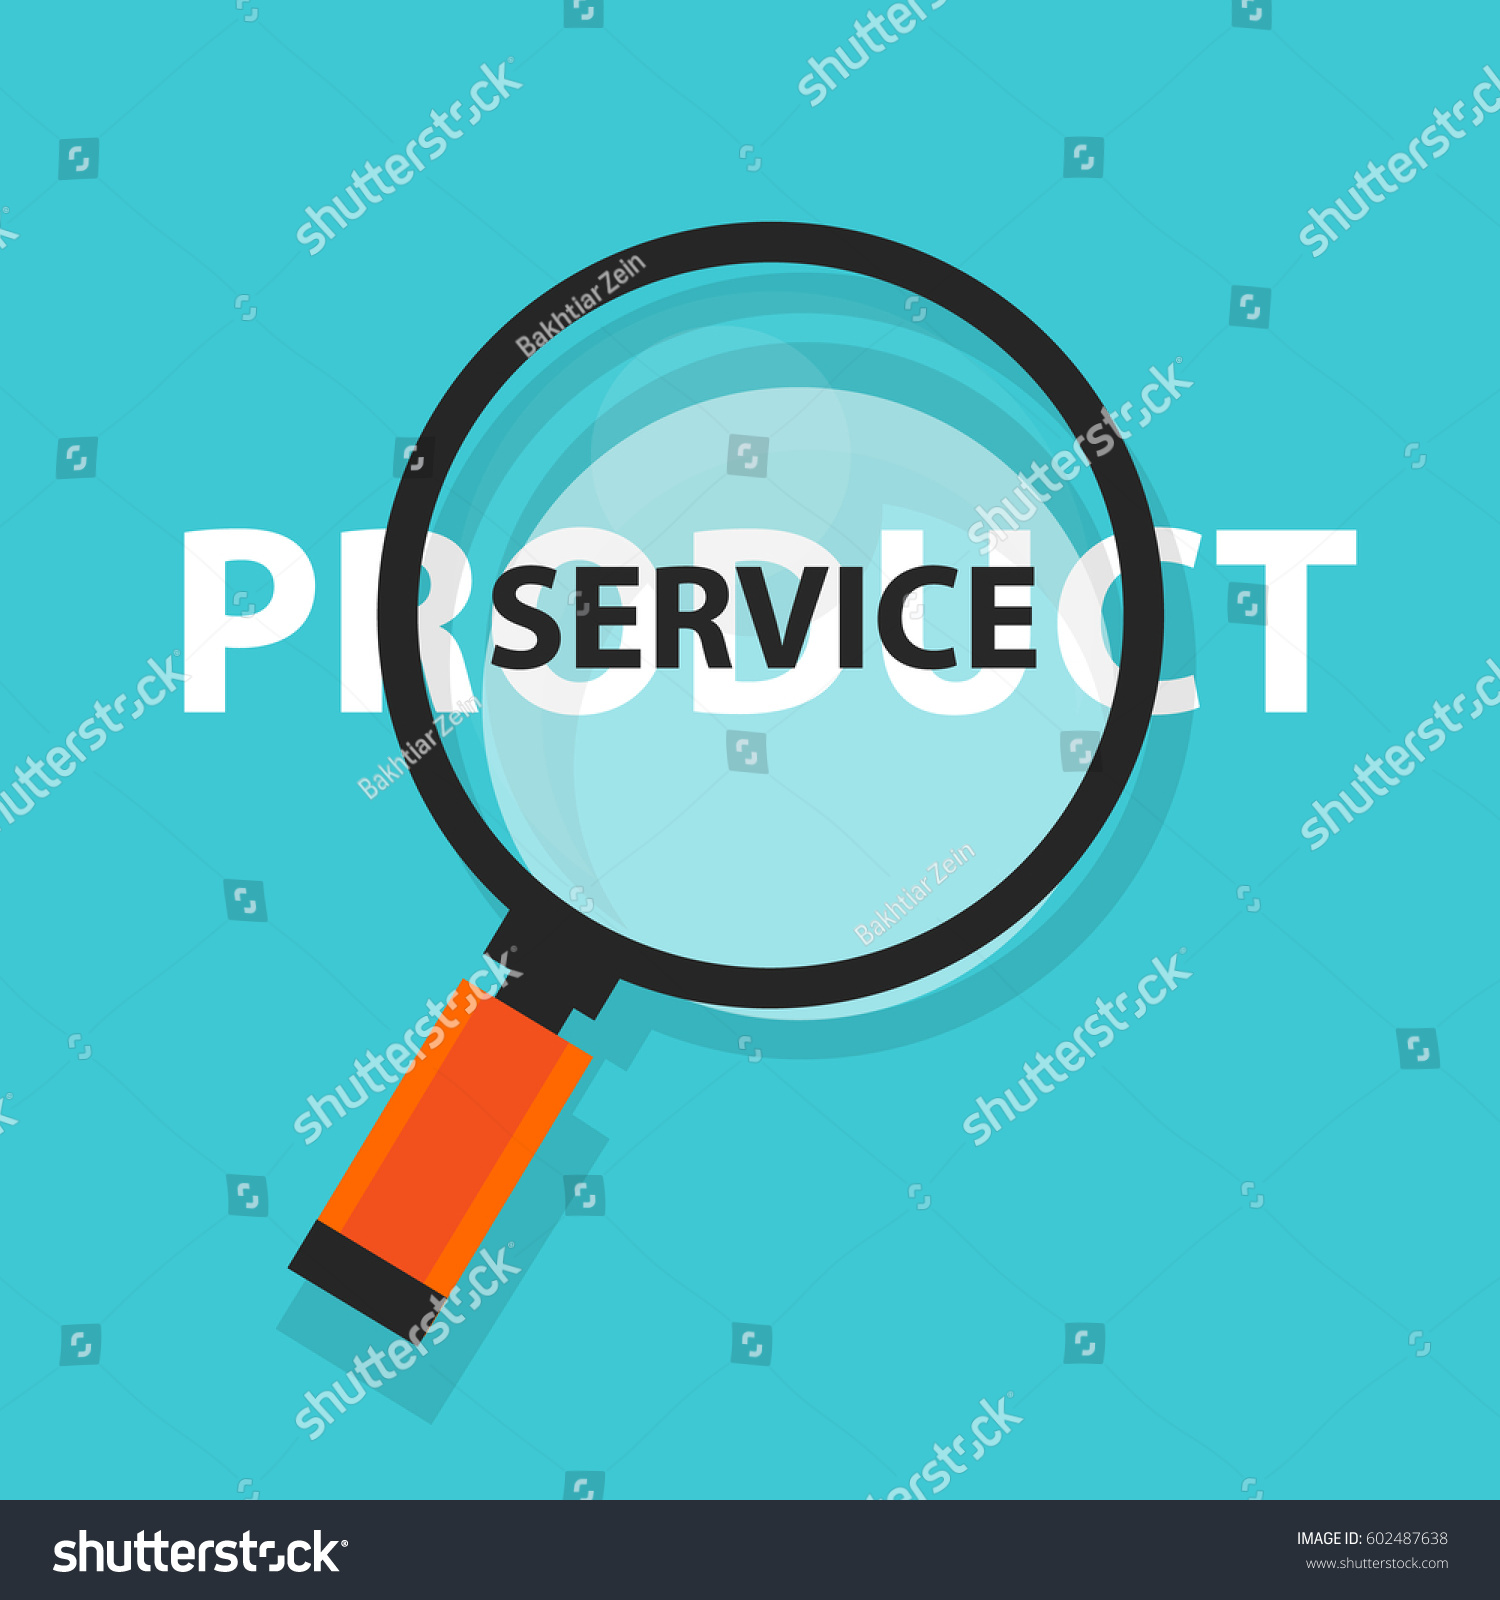 Product Service Concept Business Analysis Magnifying Stock Vector